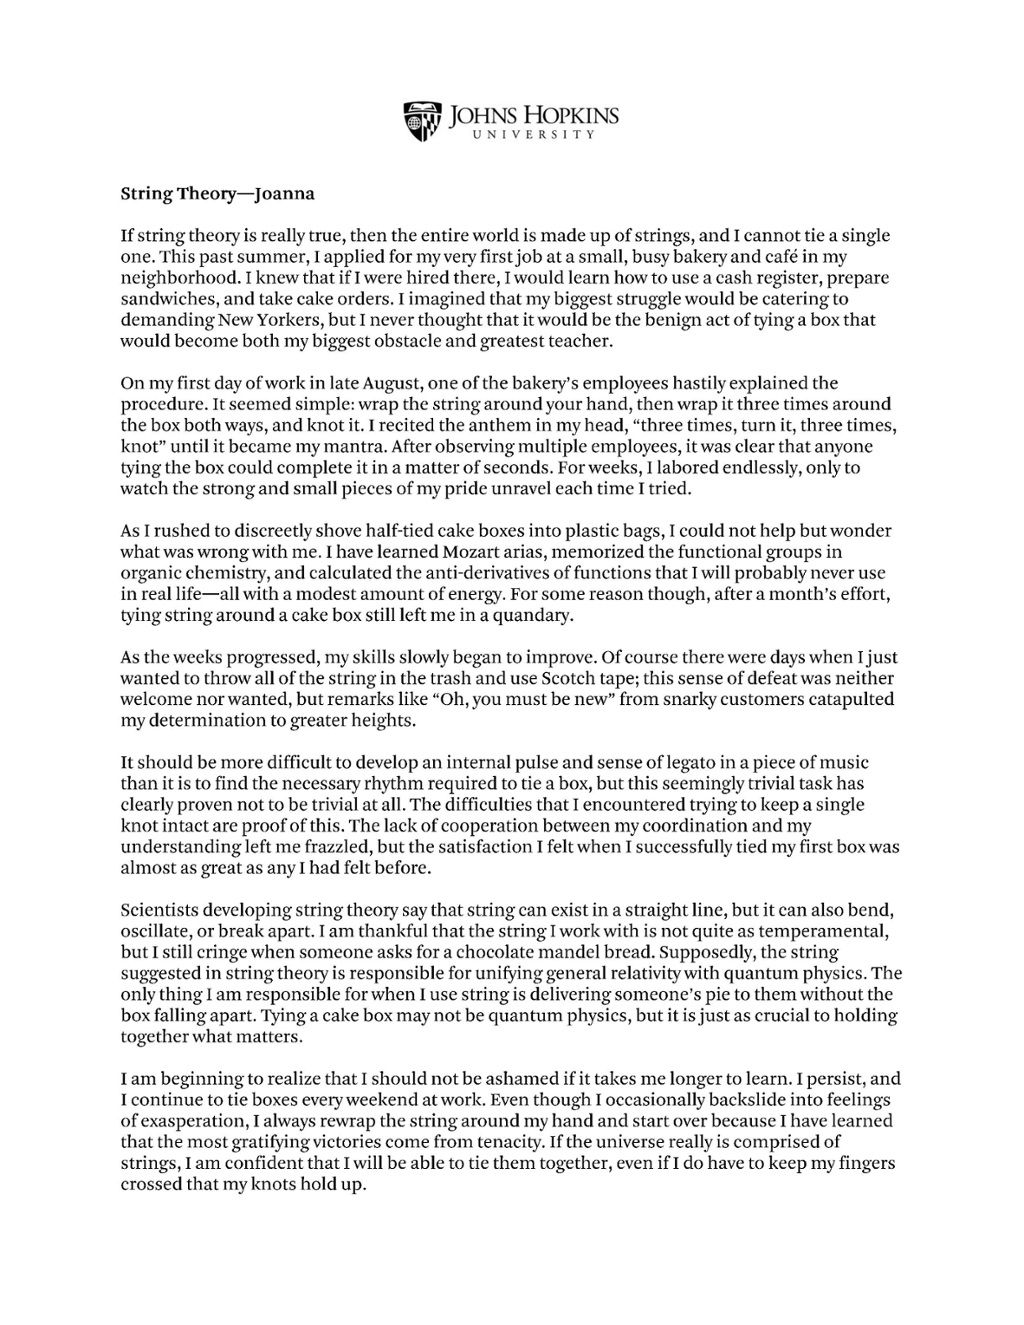 001 How To Start An Essay For College Example Stupendous Write Autobiography Examples Scholarships Full